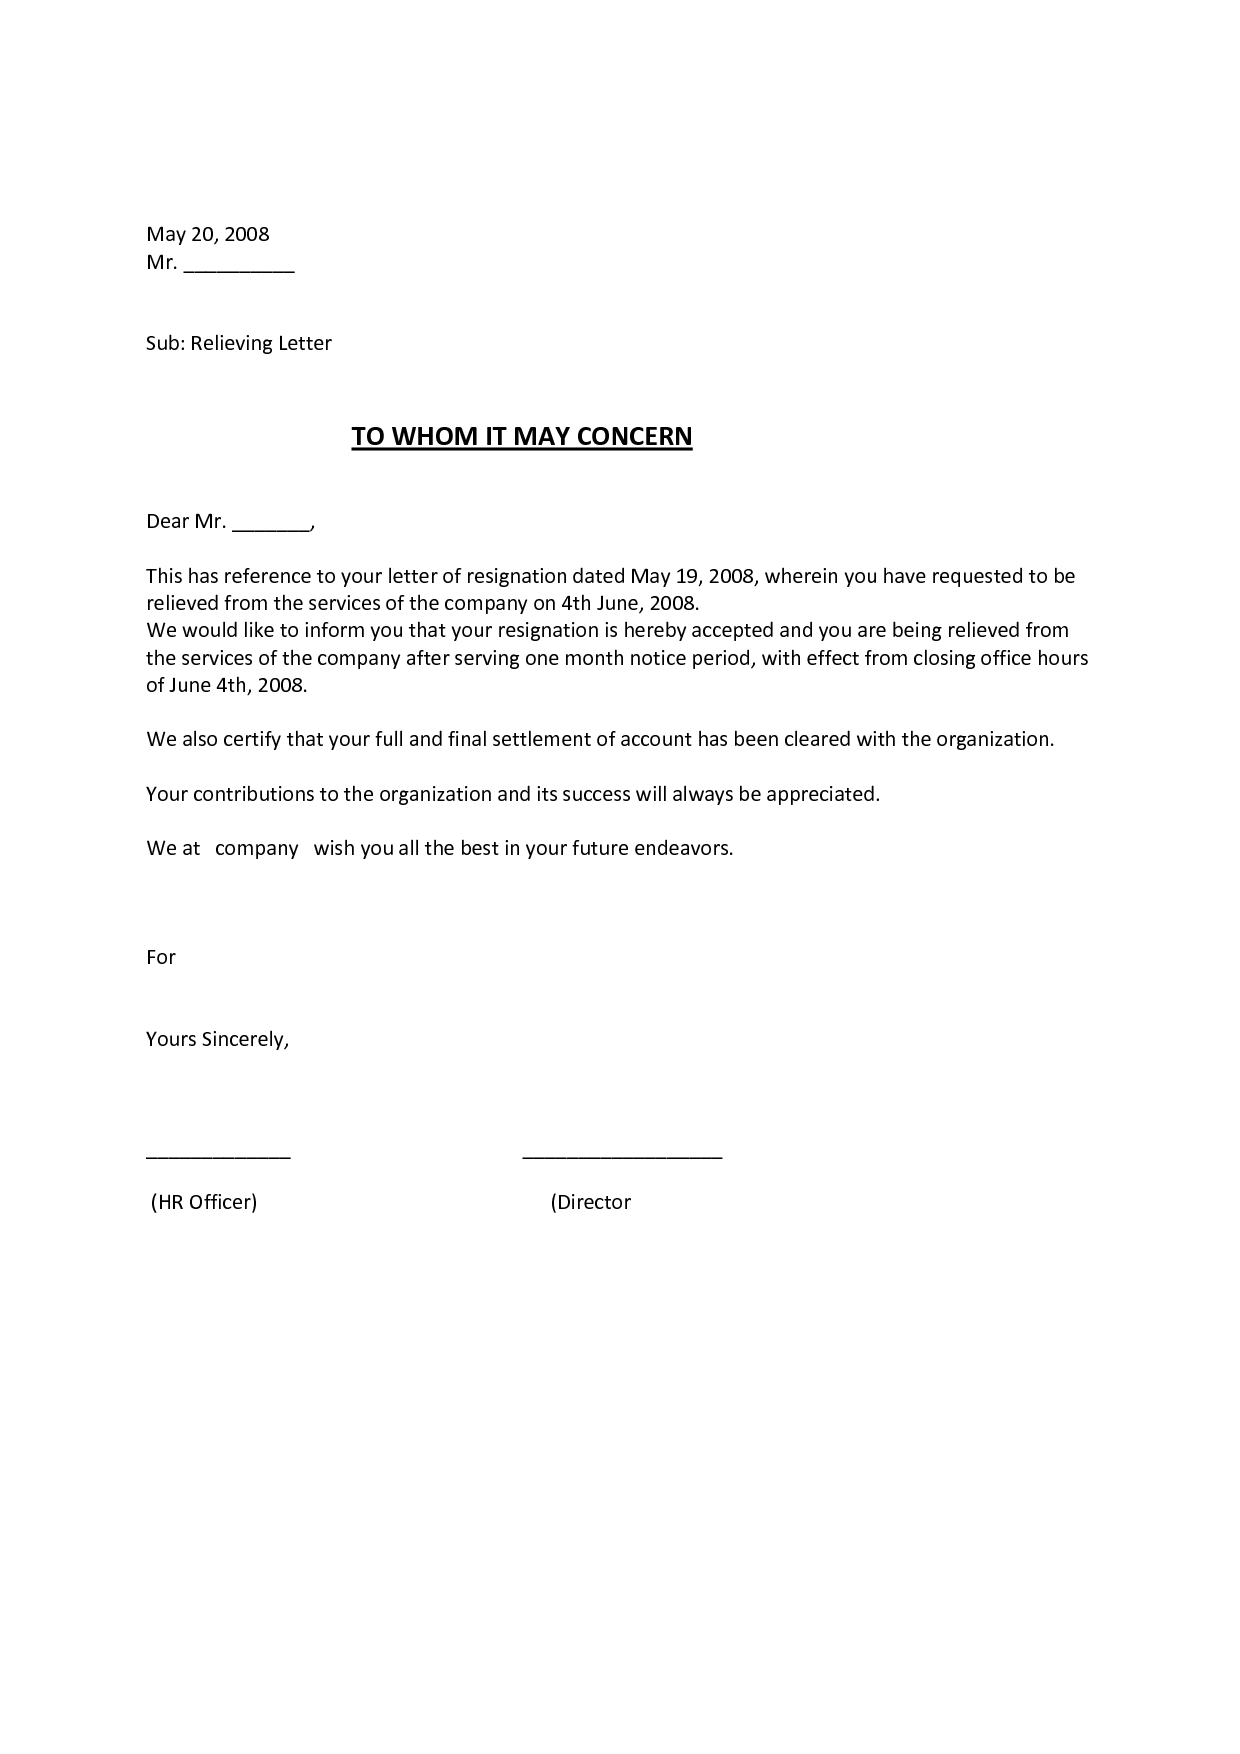 Employee relieving letter a relieving letter is meant to relieve no objection letter format for employer templatebillybullockus resume template doc billybullock stopboris